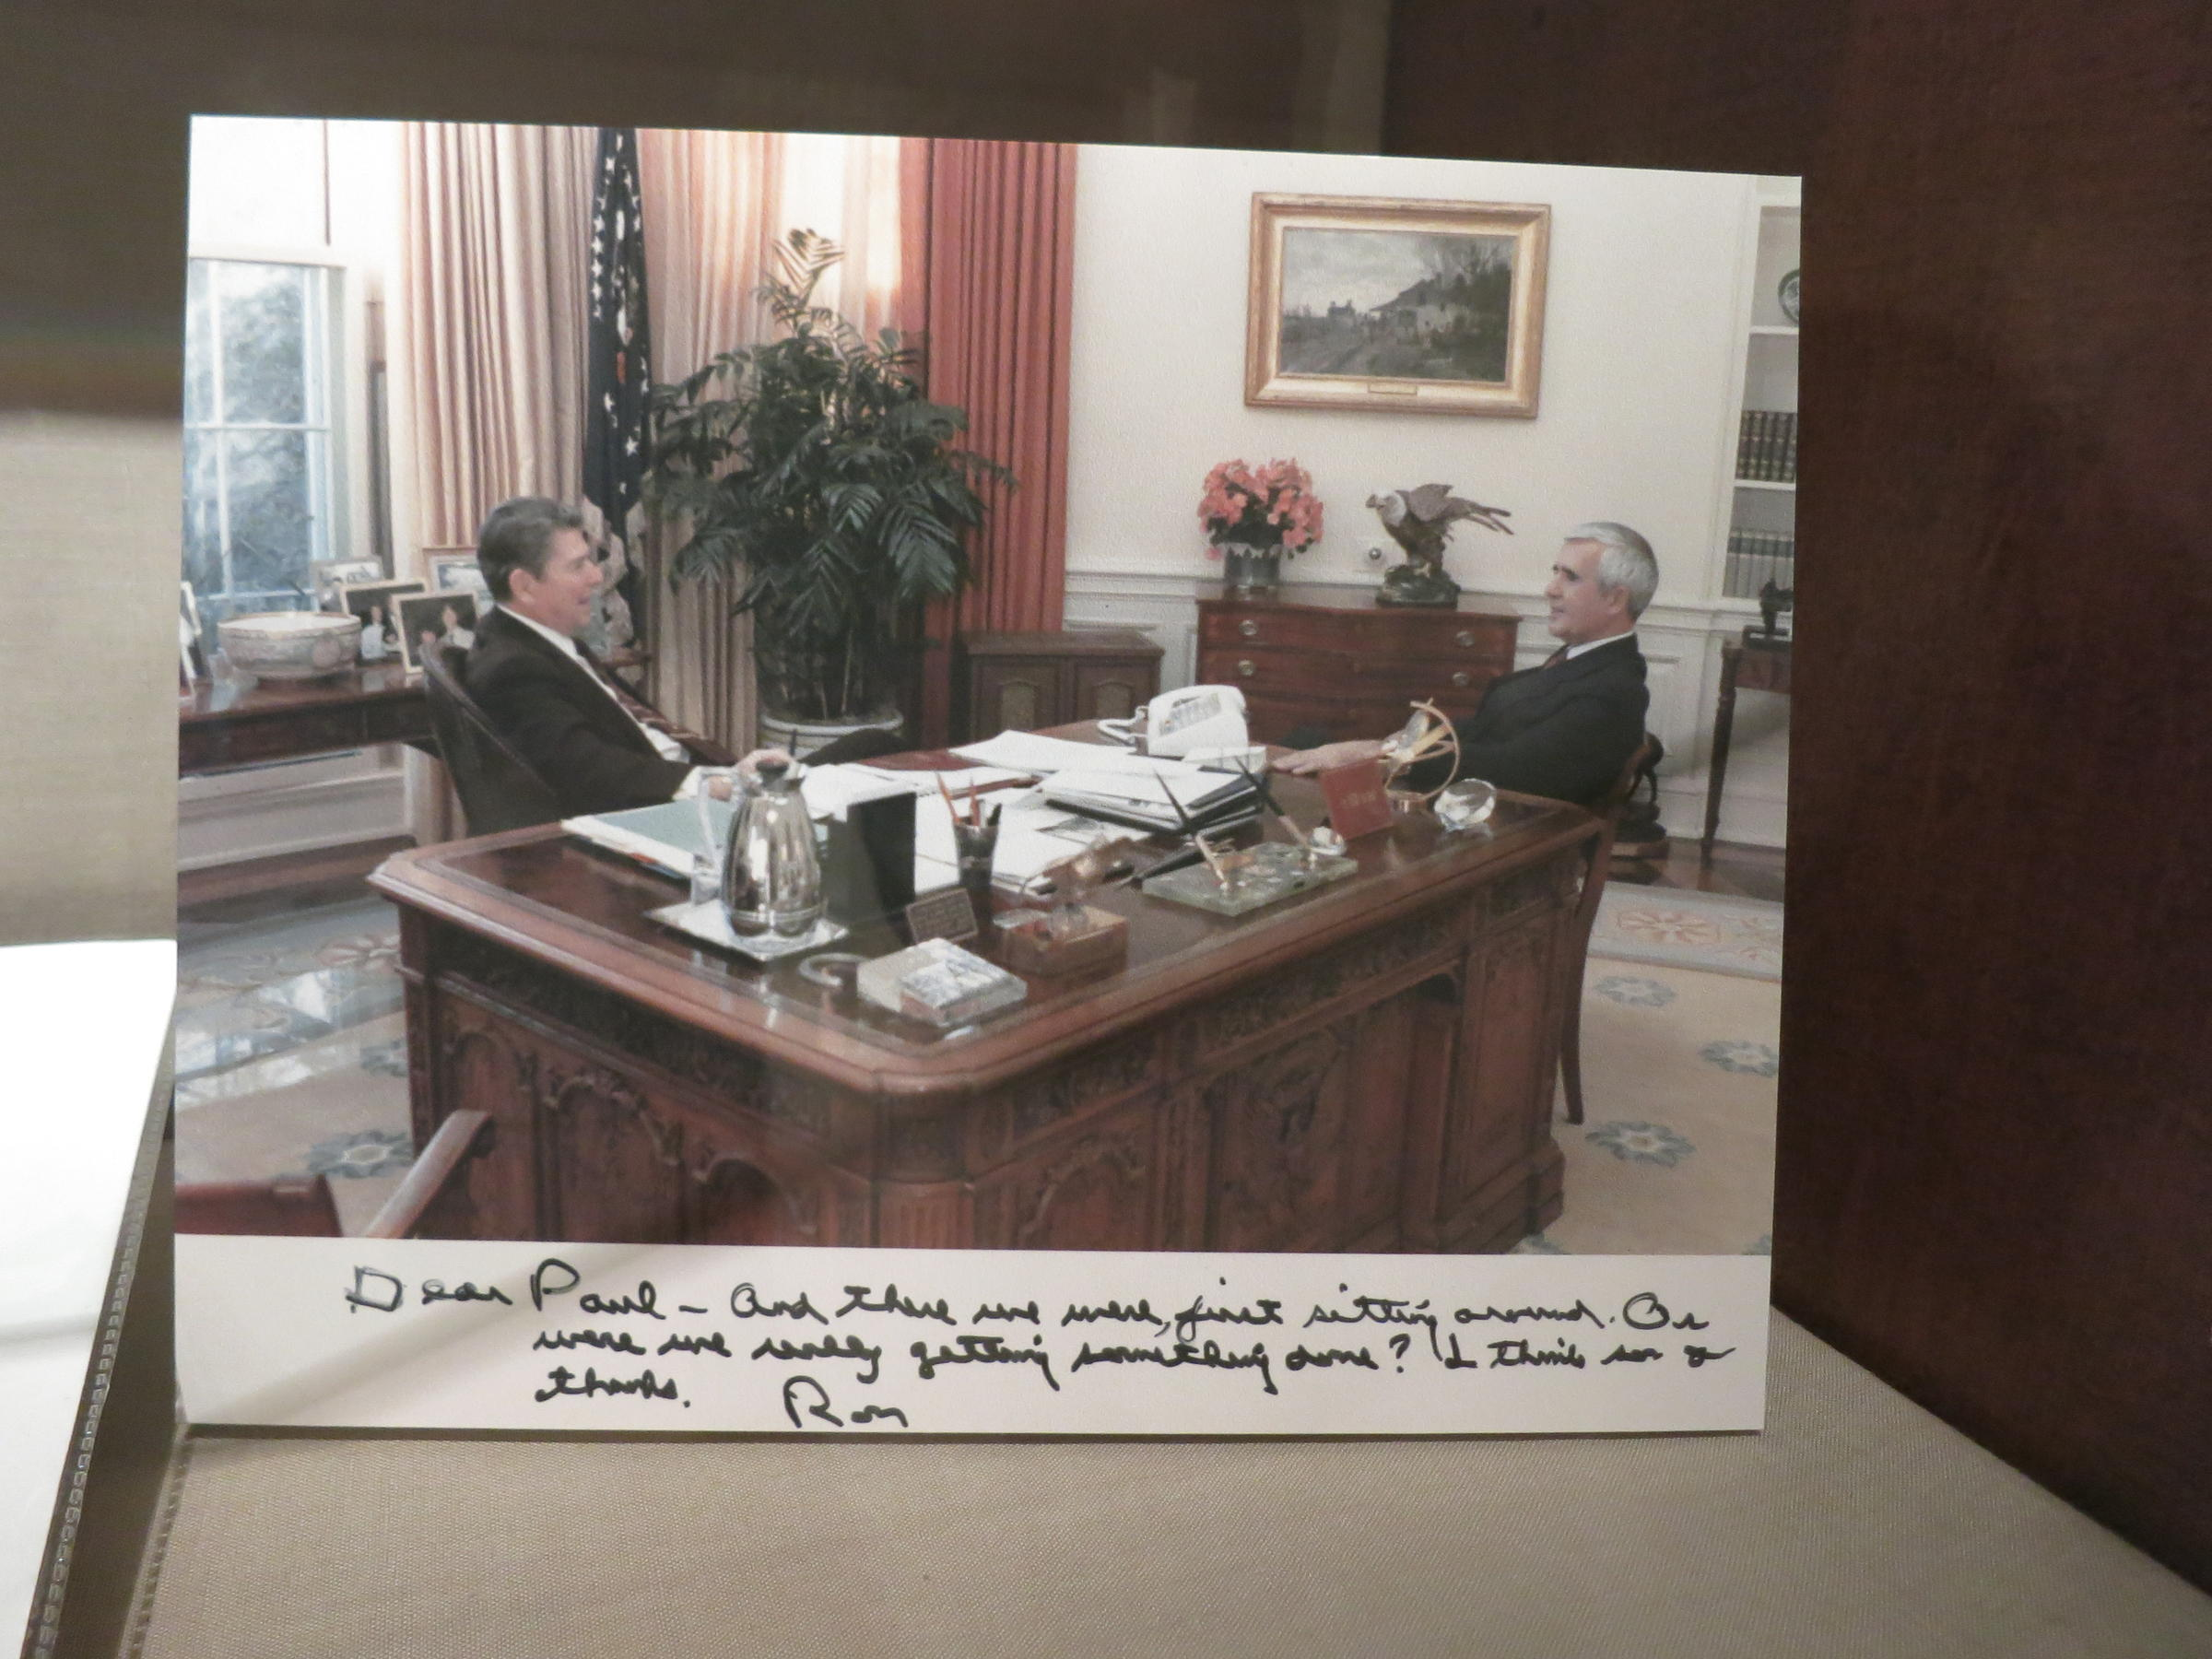 History Repeats Itself In New Unr Political Exhibit